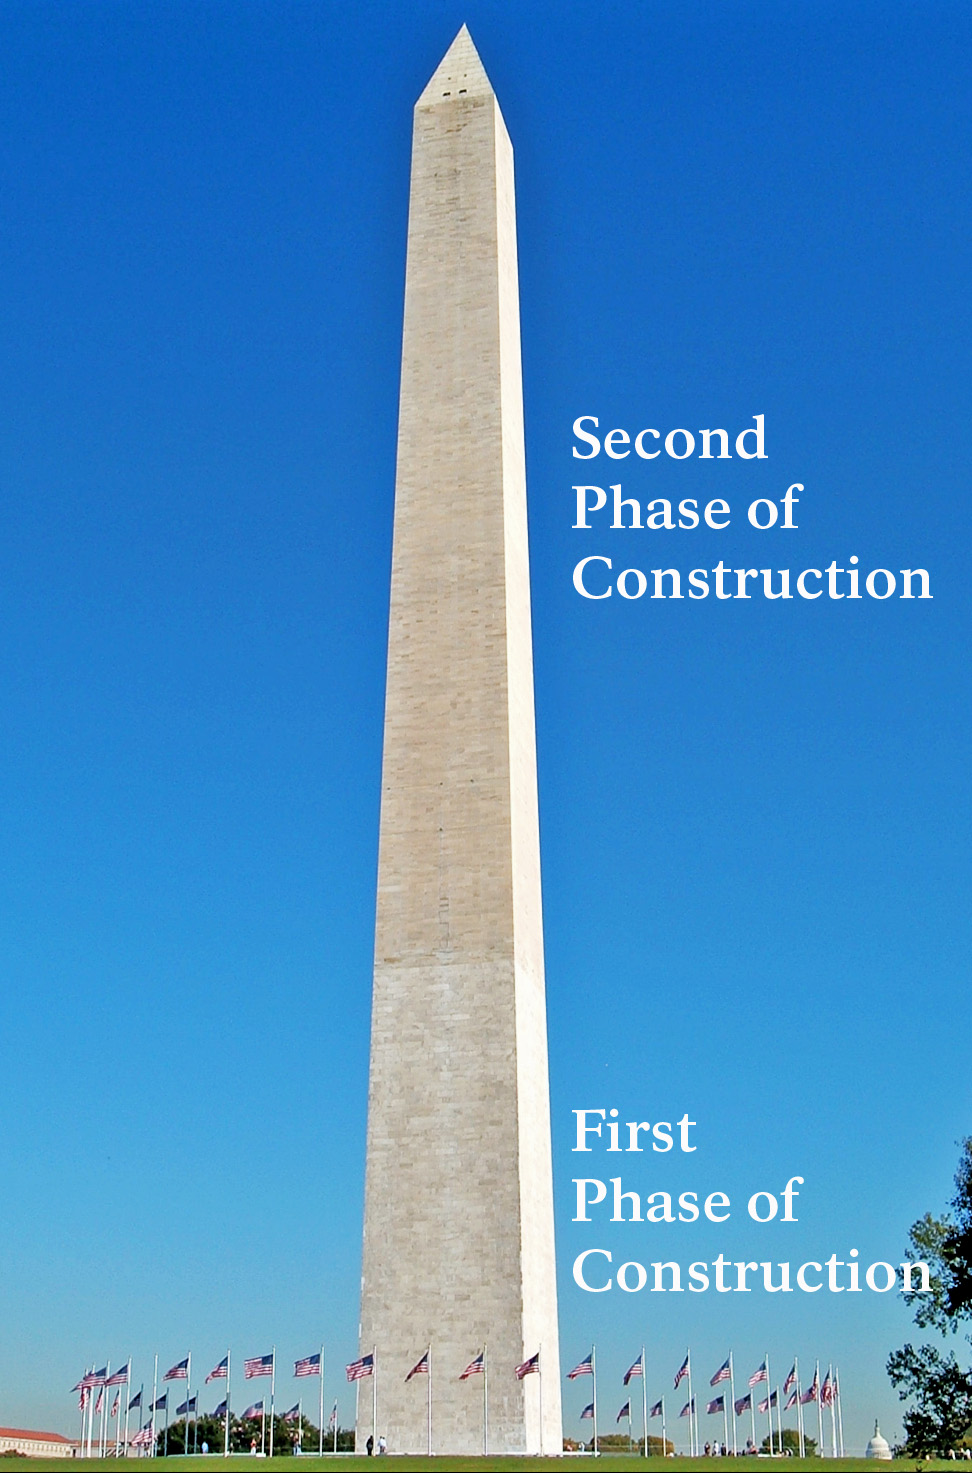 Washington Monument National Monument - Frequently Asked Questions ...